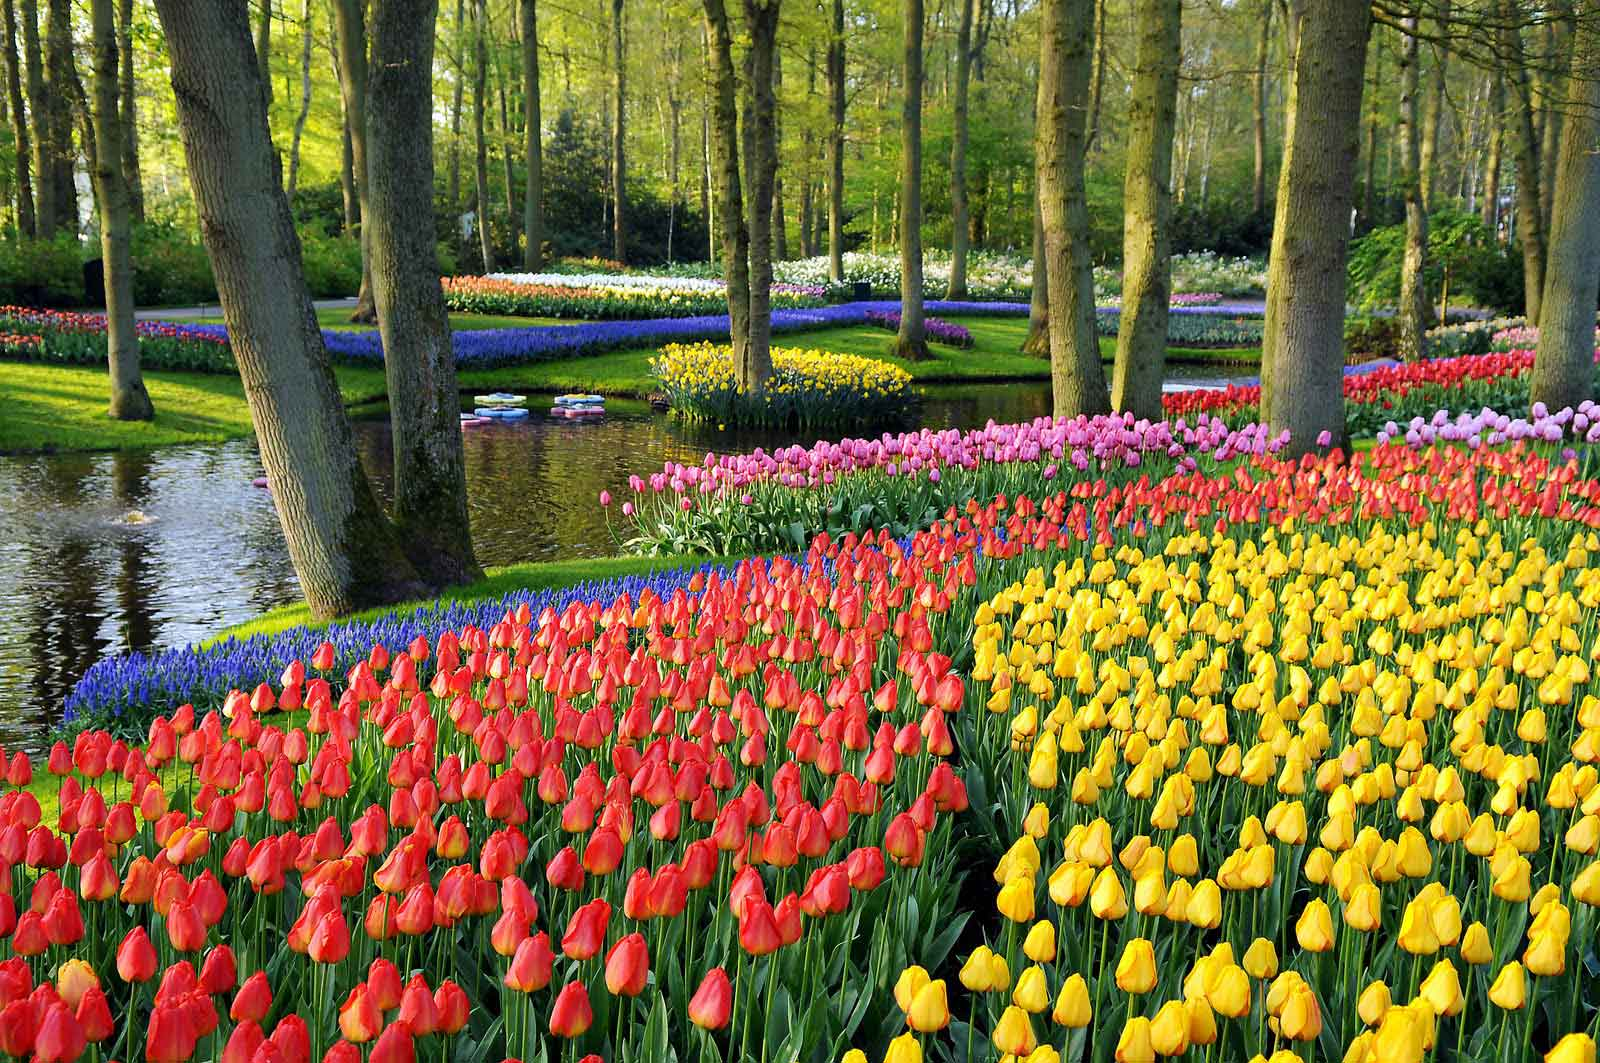 The-Garden-Keukenhof,-Netherlands-2